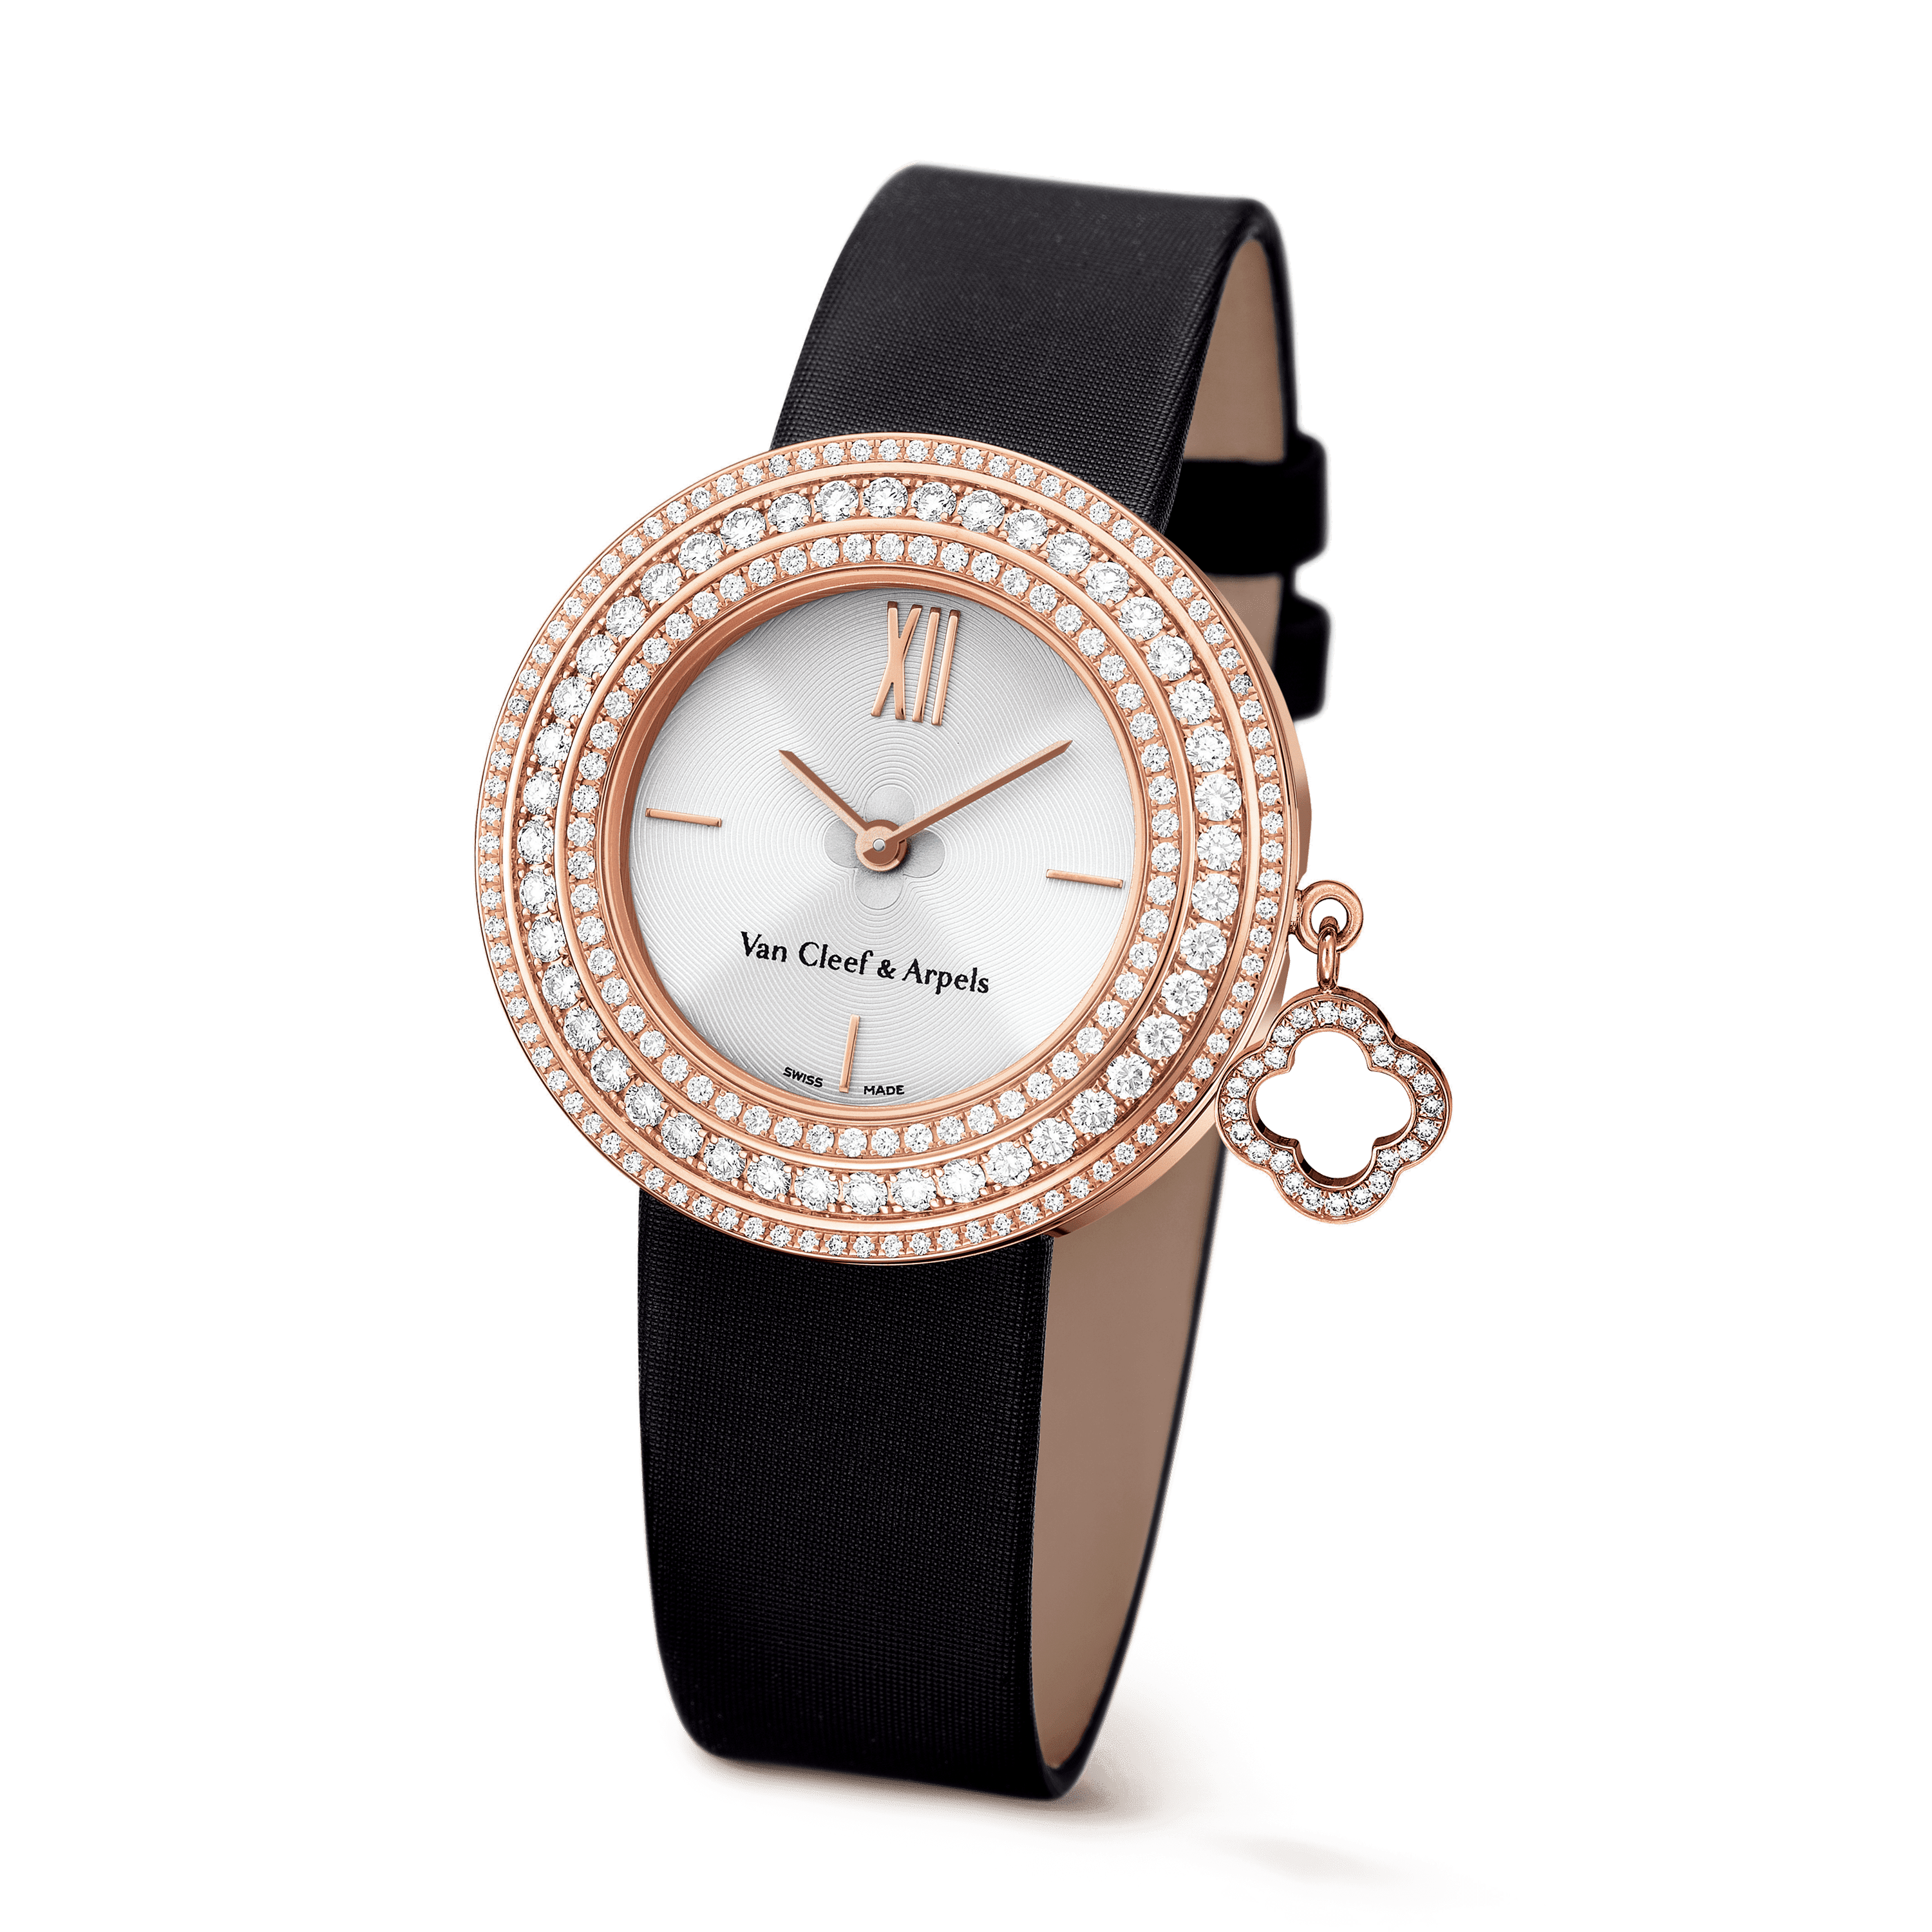 Charms watch, 32 mm,Satin,self interchangeable - 3|4 View - VCARM93500 - Van Cleef & Arpels